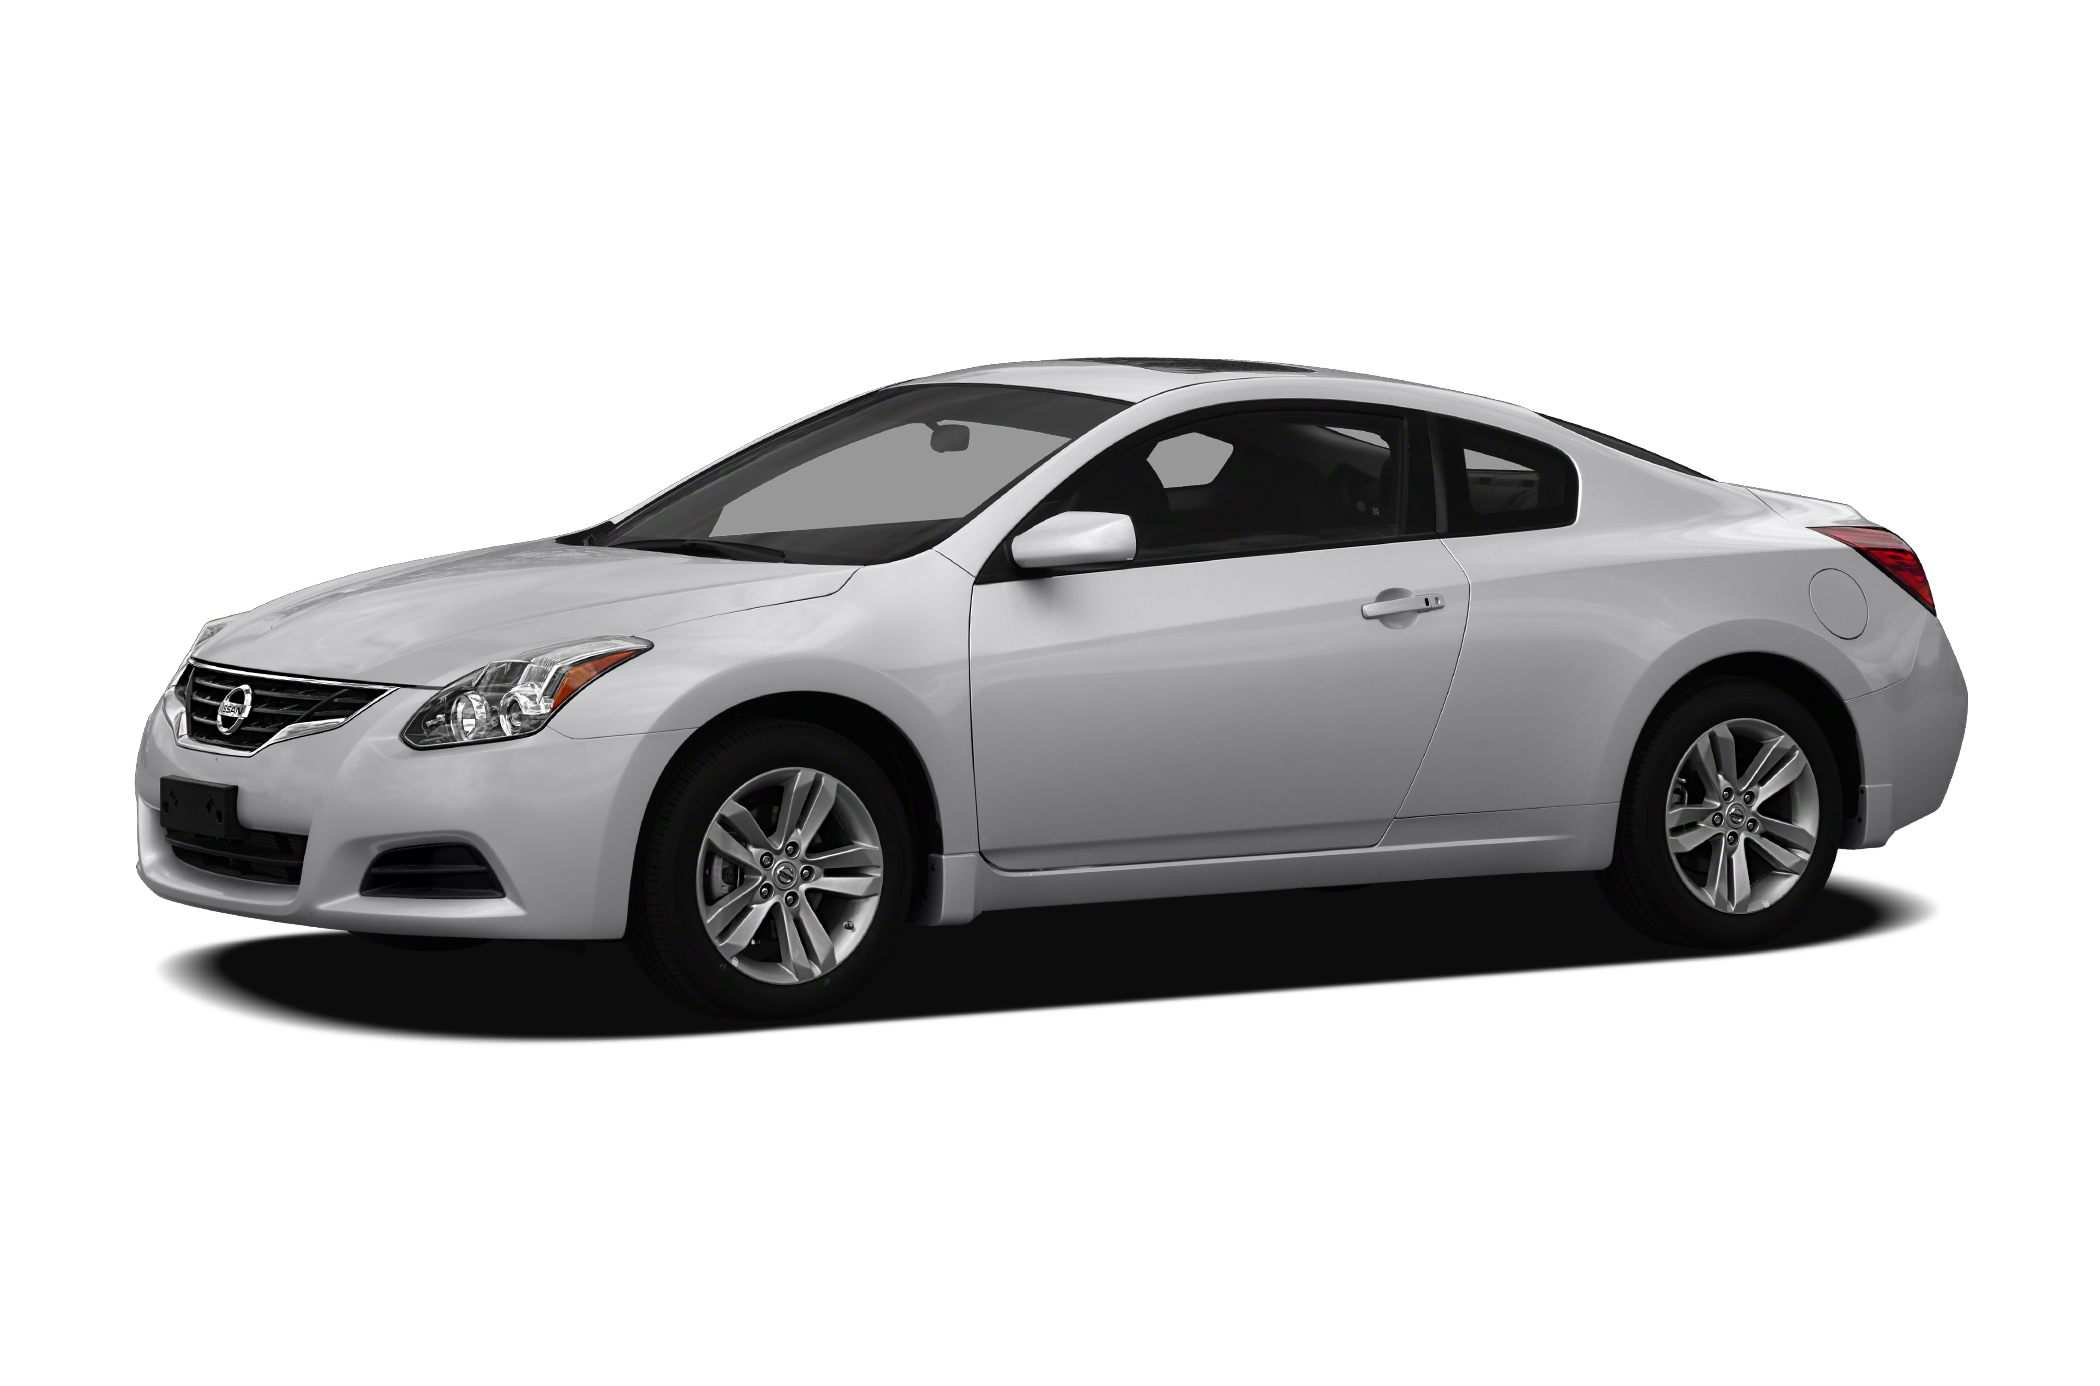 89 Great 2010 Nissan Altima Coupe Picture for 2010 Nissan Altima Coupe